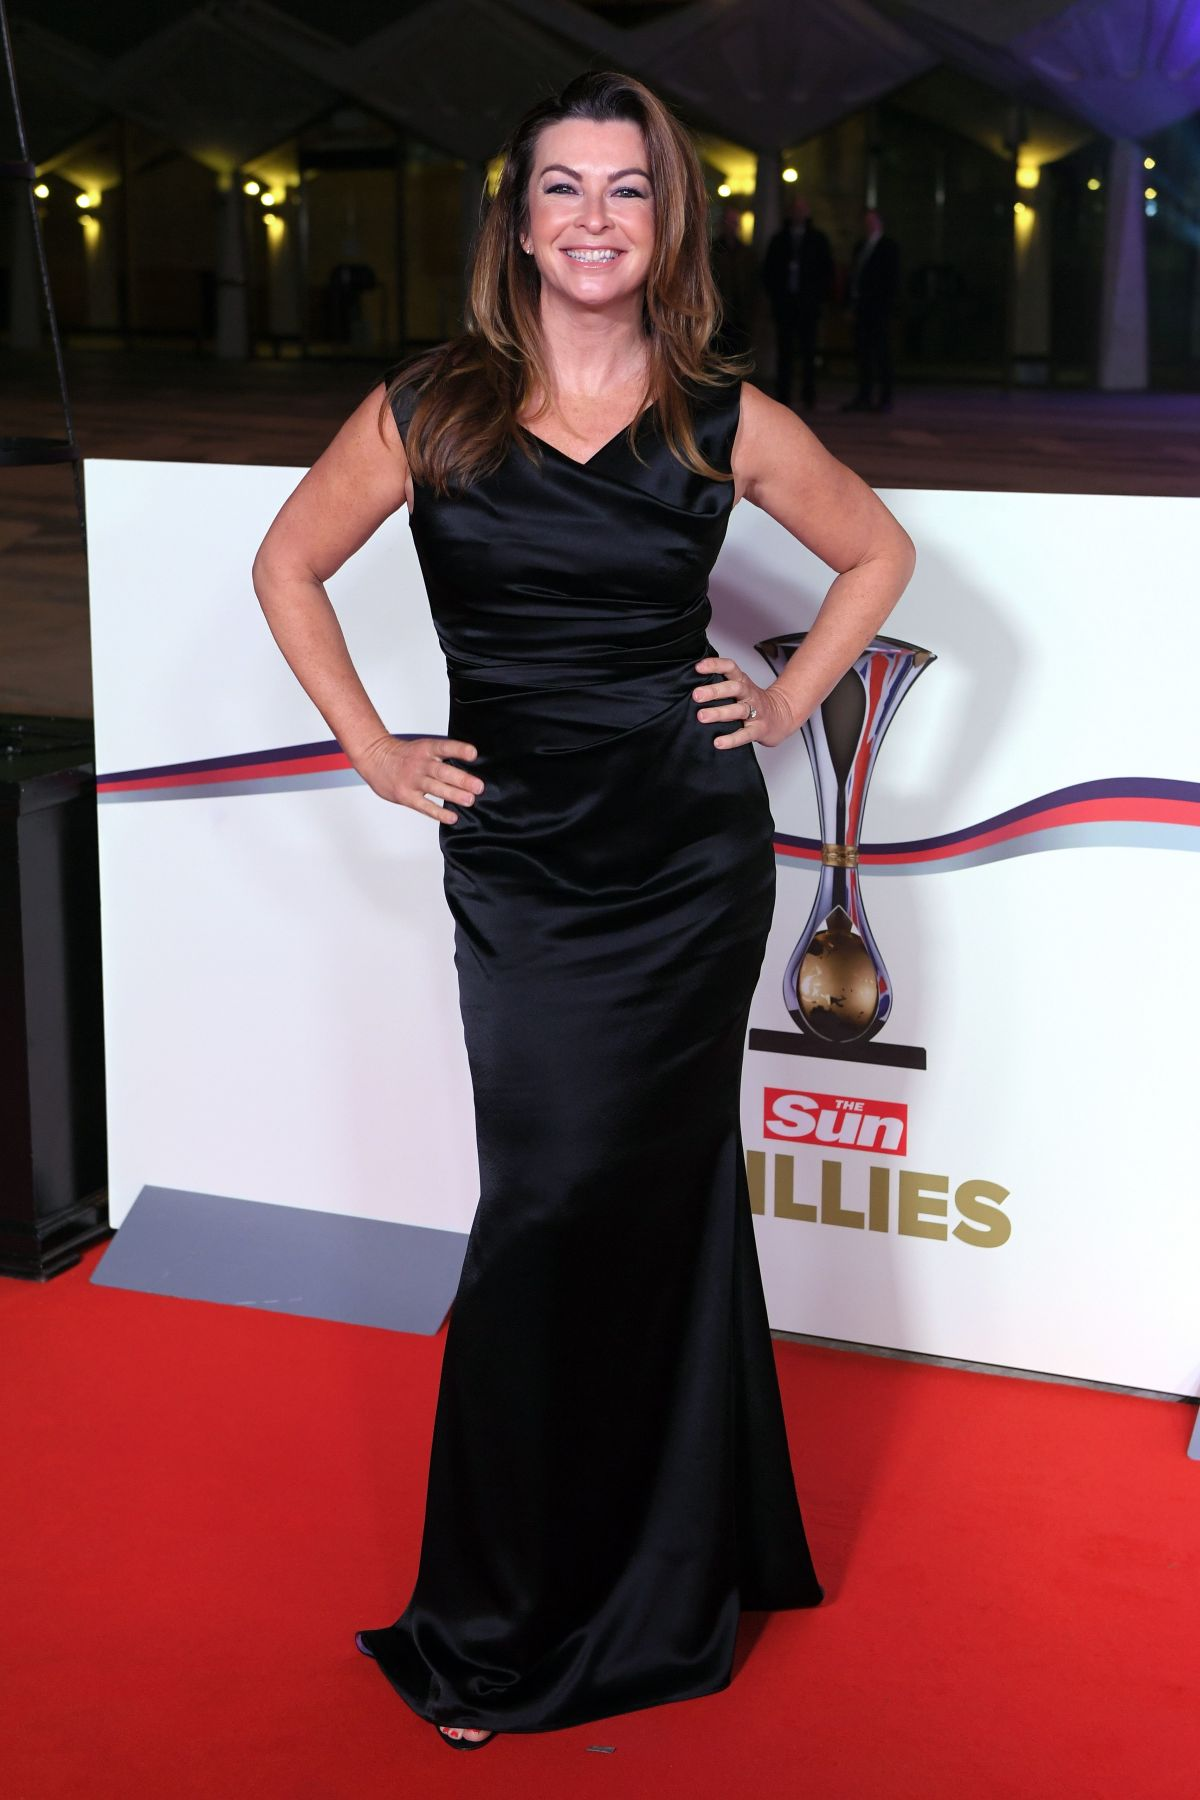 SUZI PERRY at The Sun Military Awards in London 12/14/2016